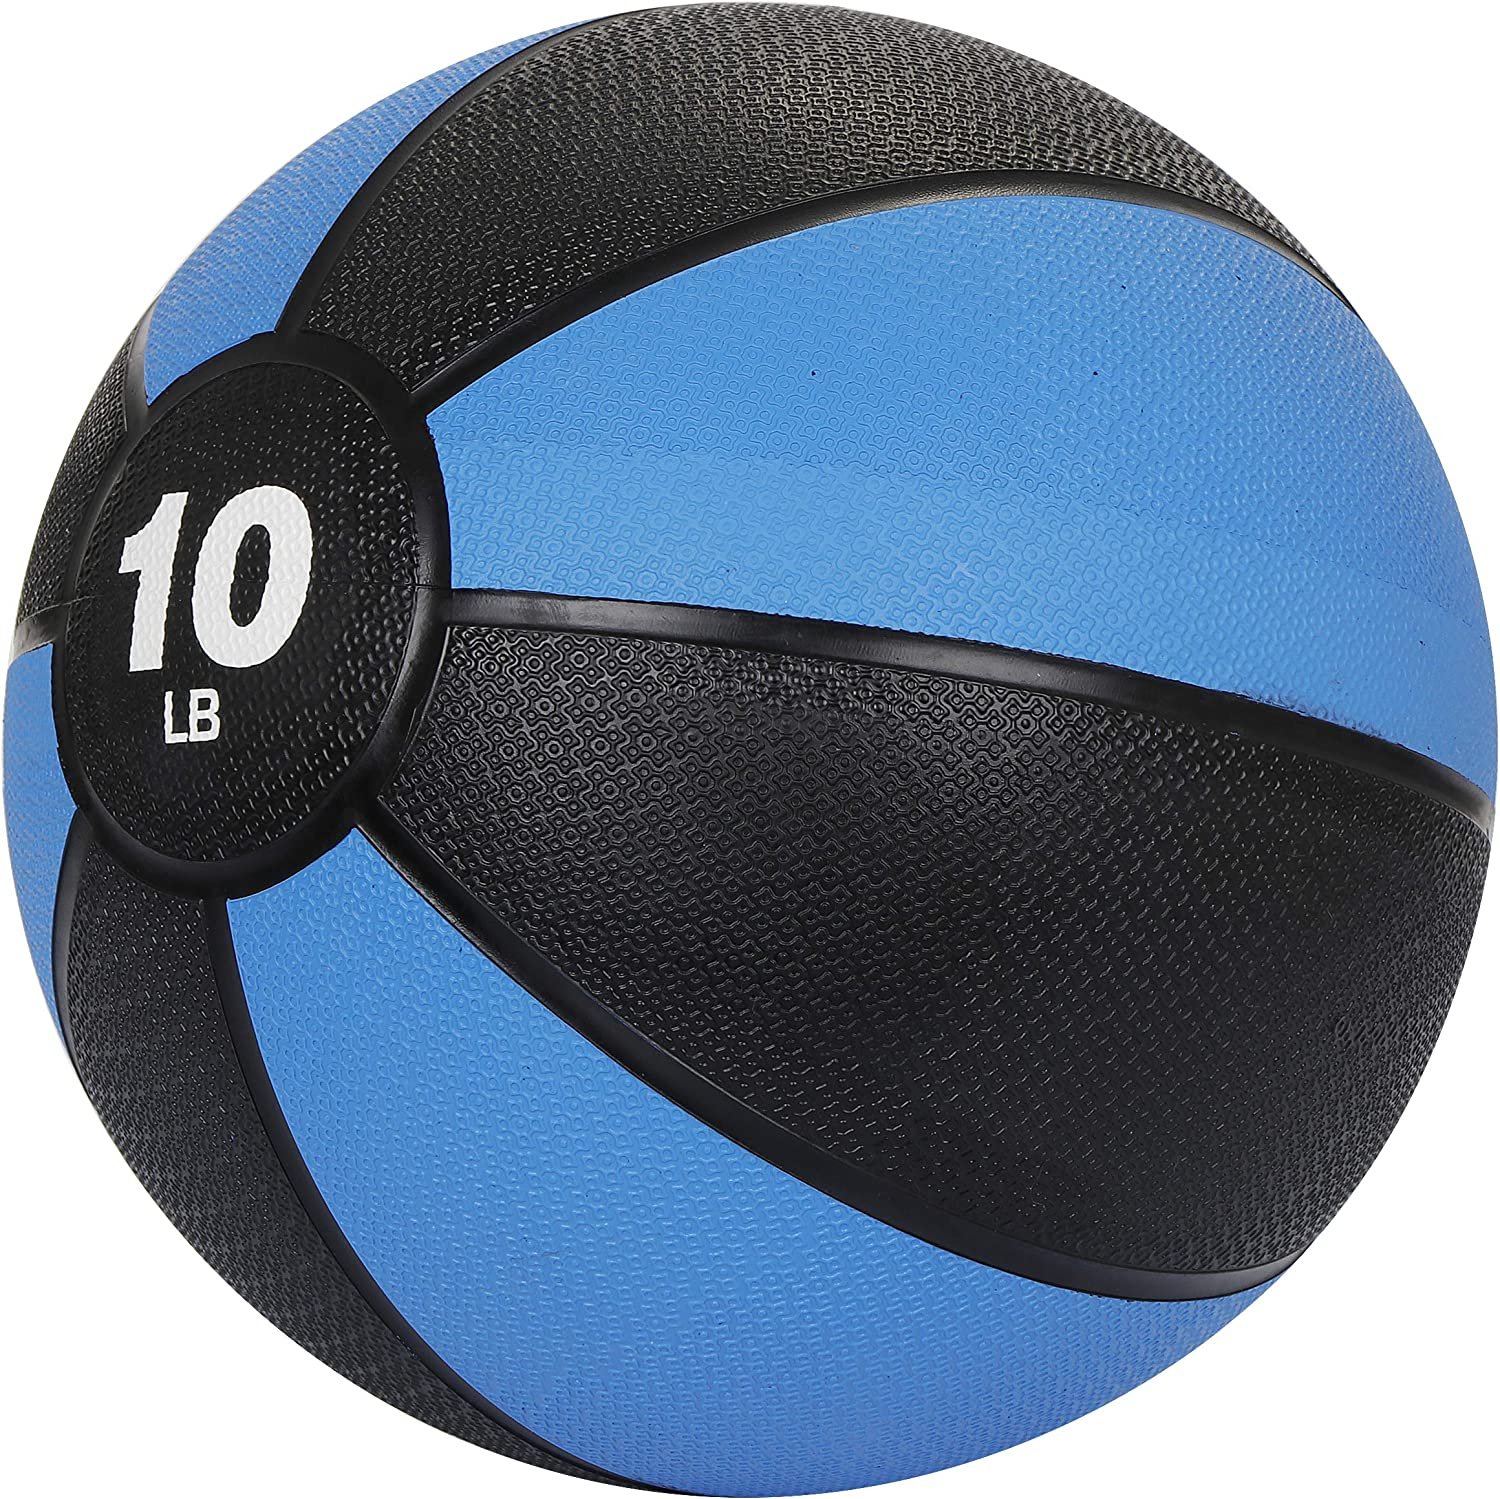 Epetlover 10 lbs. Weighted Fitness Workout Balls